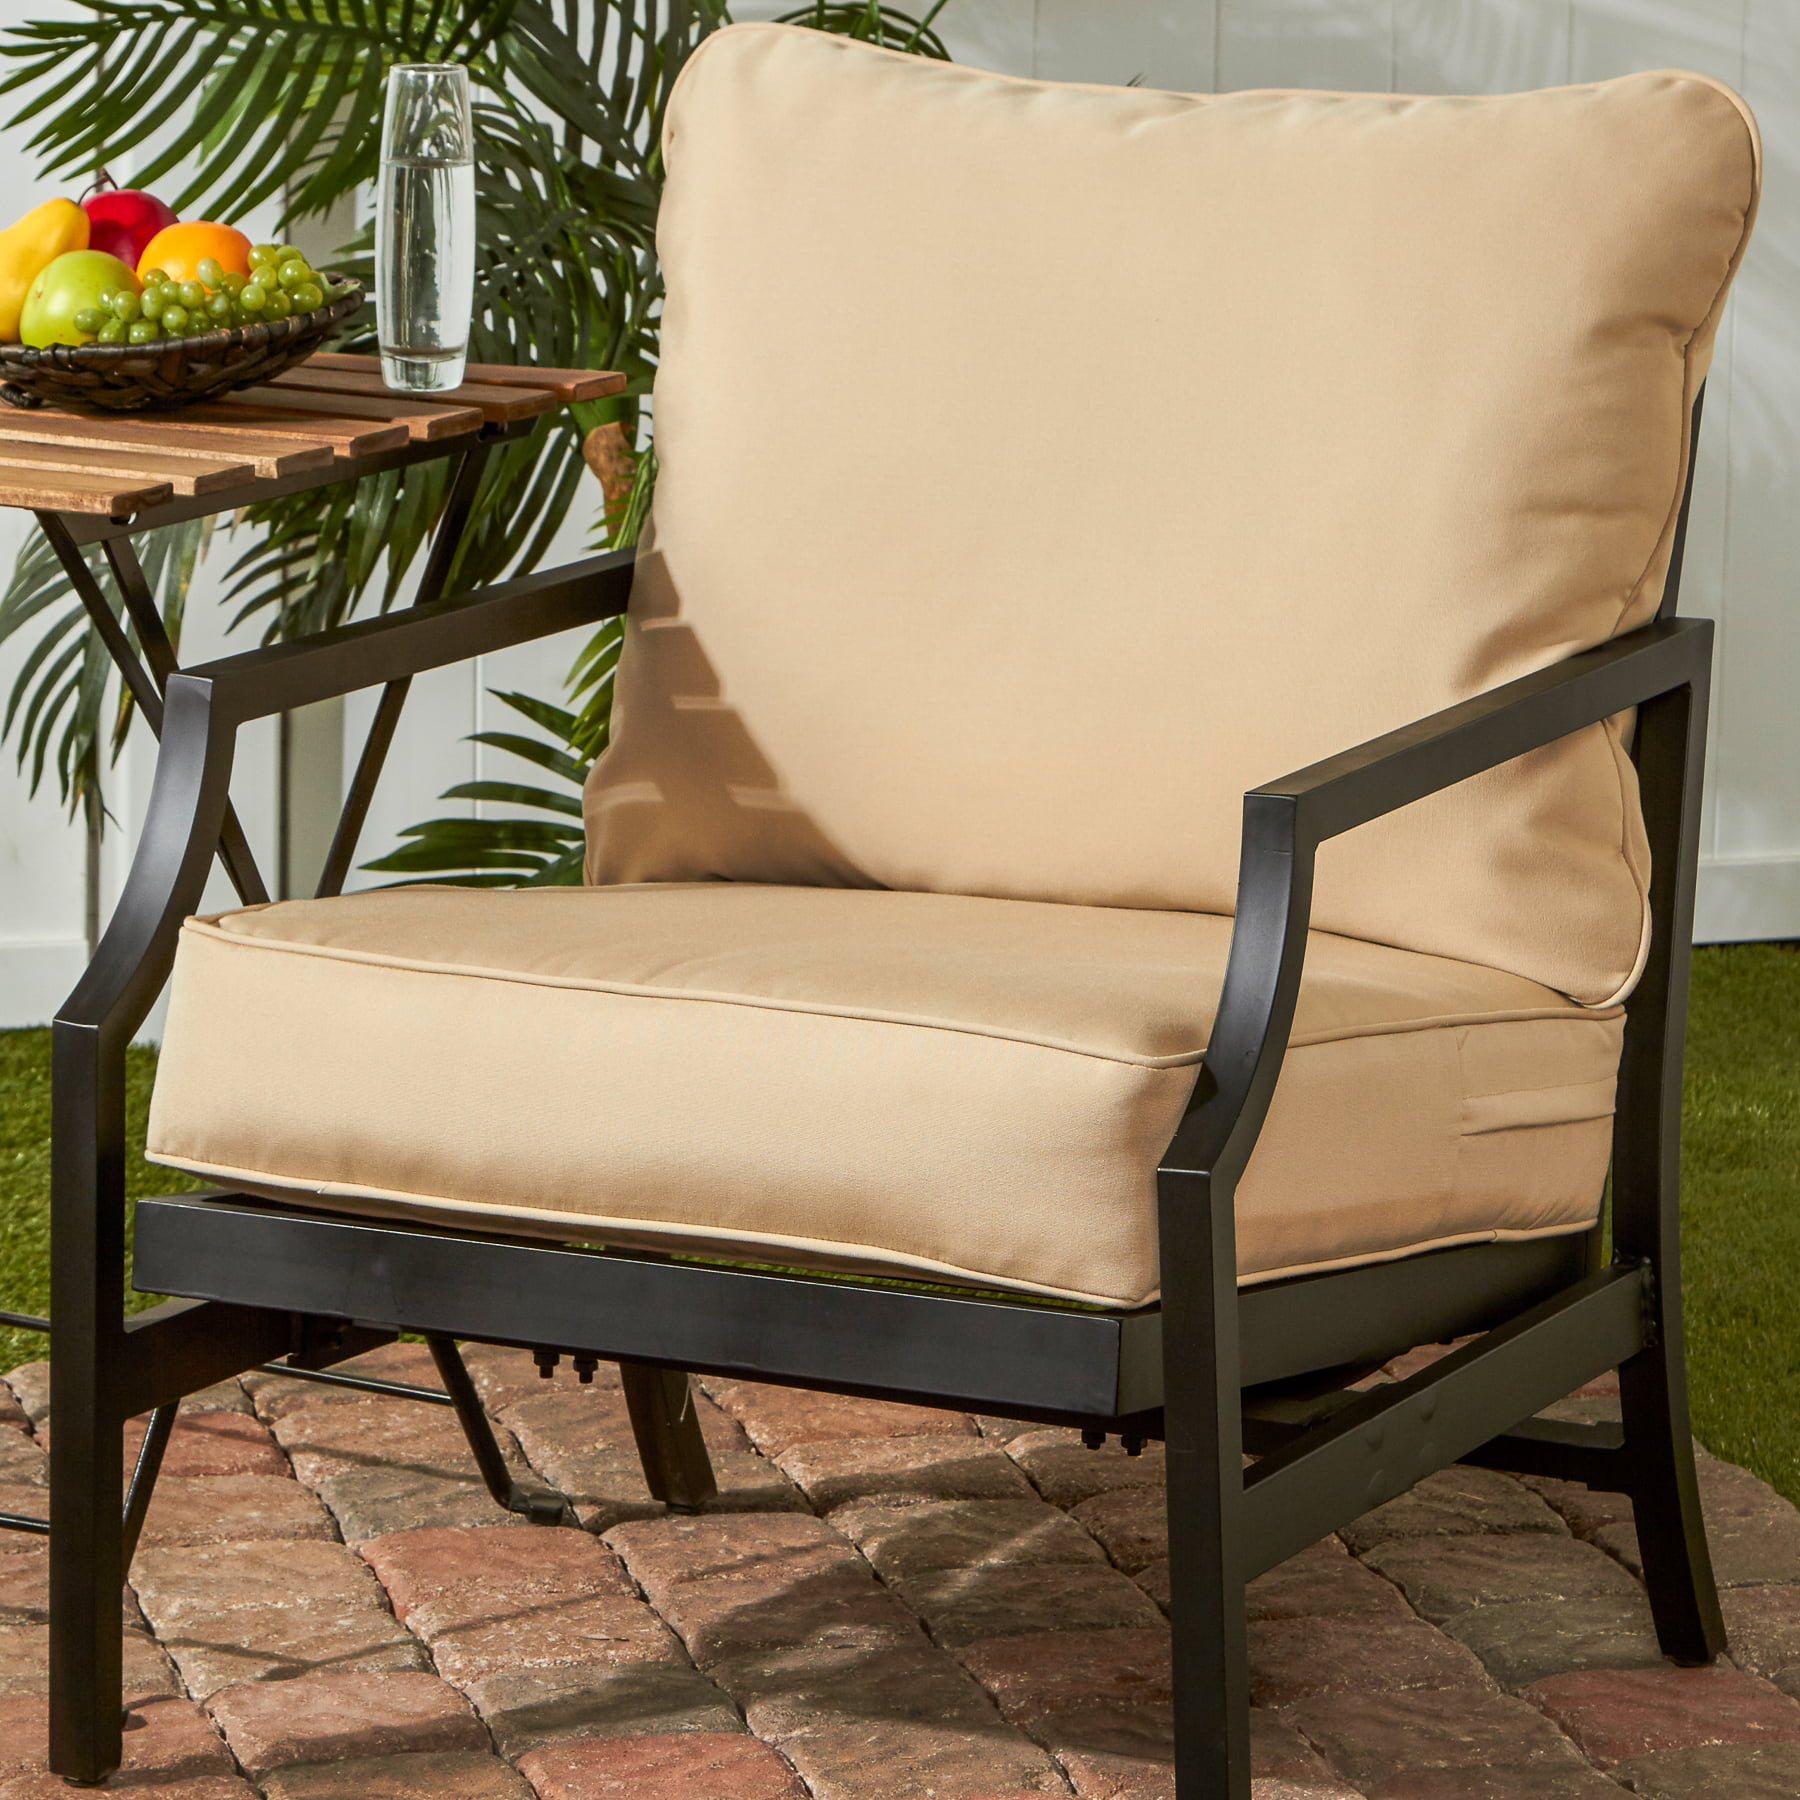 Greendale Home Fashions Outdoor Solid Deep Seat Cushion Set by Greendale Home Fashions